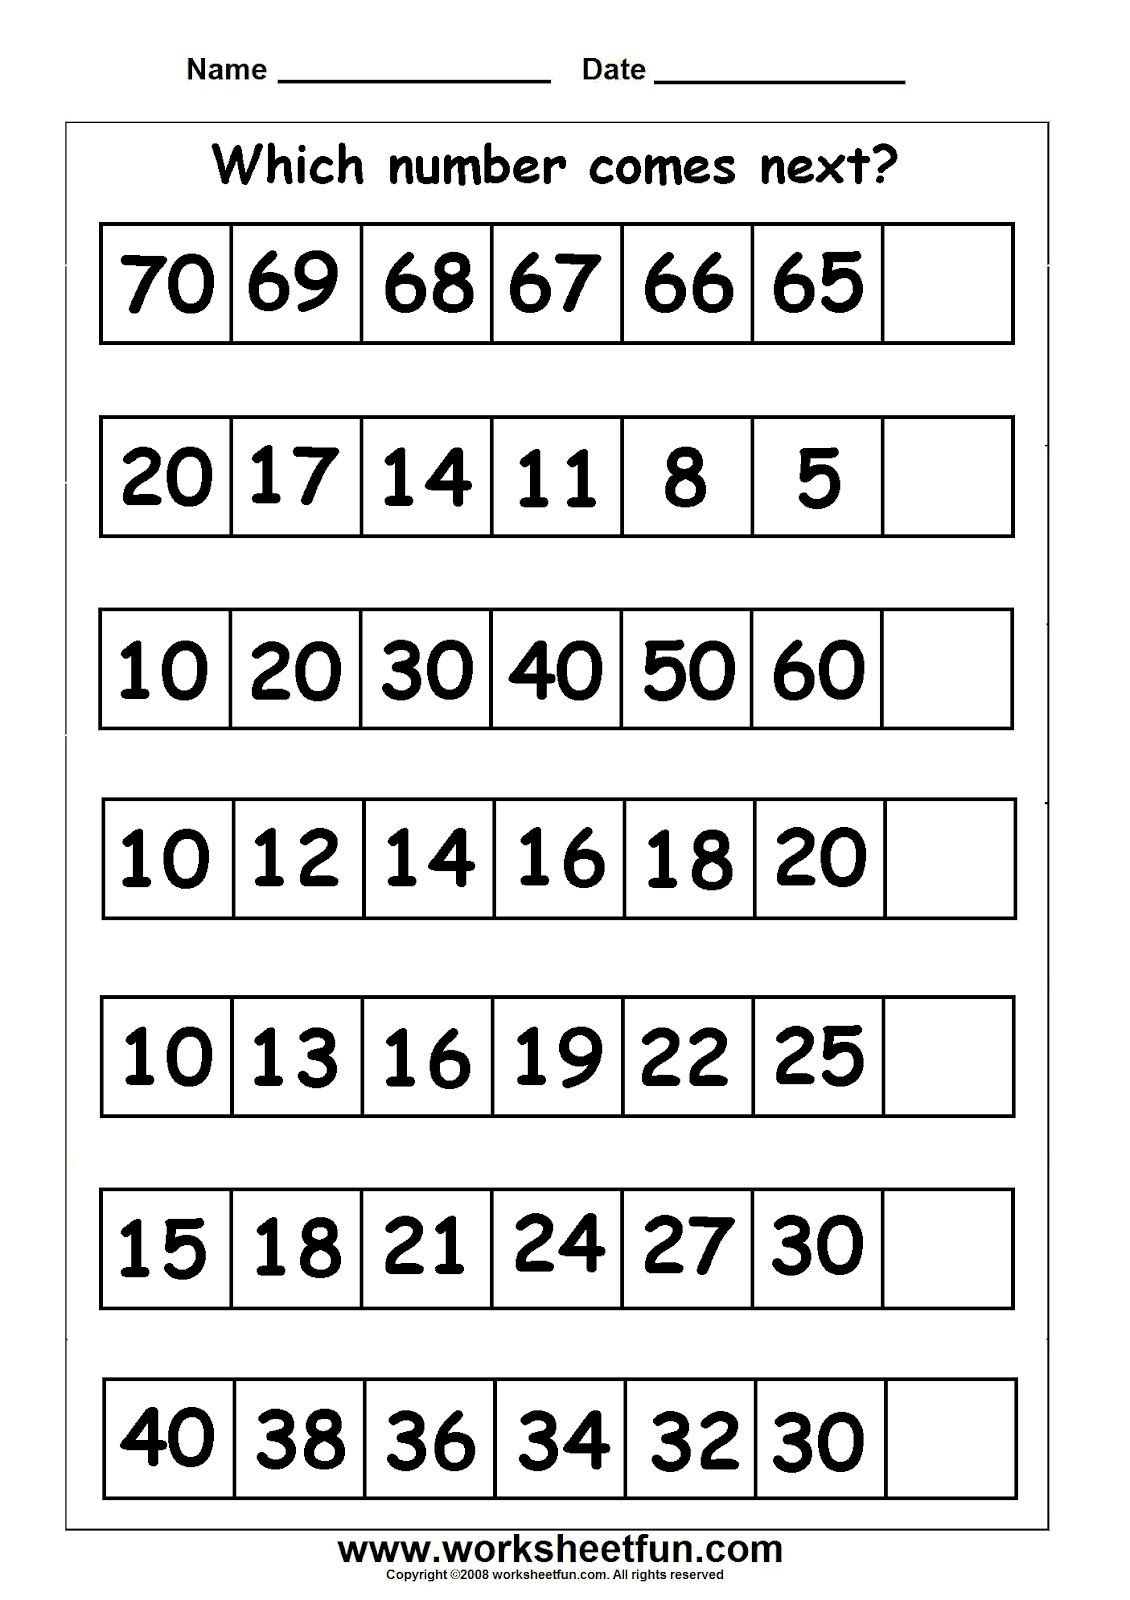 hight resolution of Prime Number Worksheet 5th Grade   Printable Worksheets and Activities for  Teachers